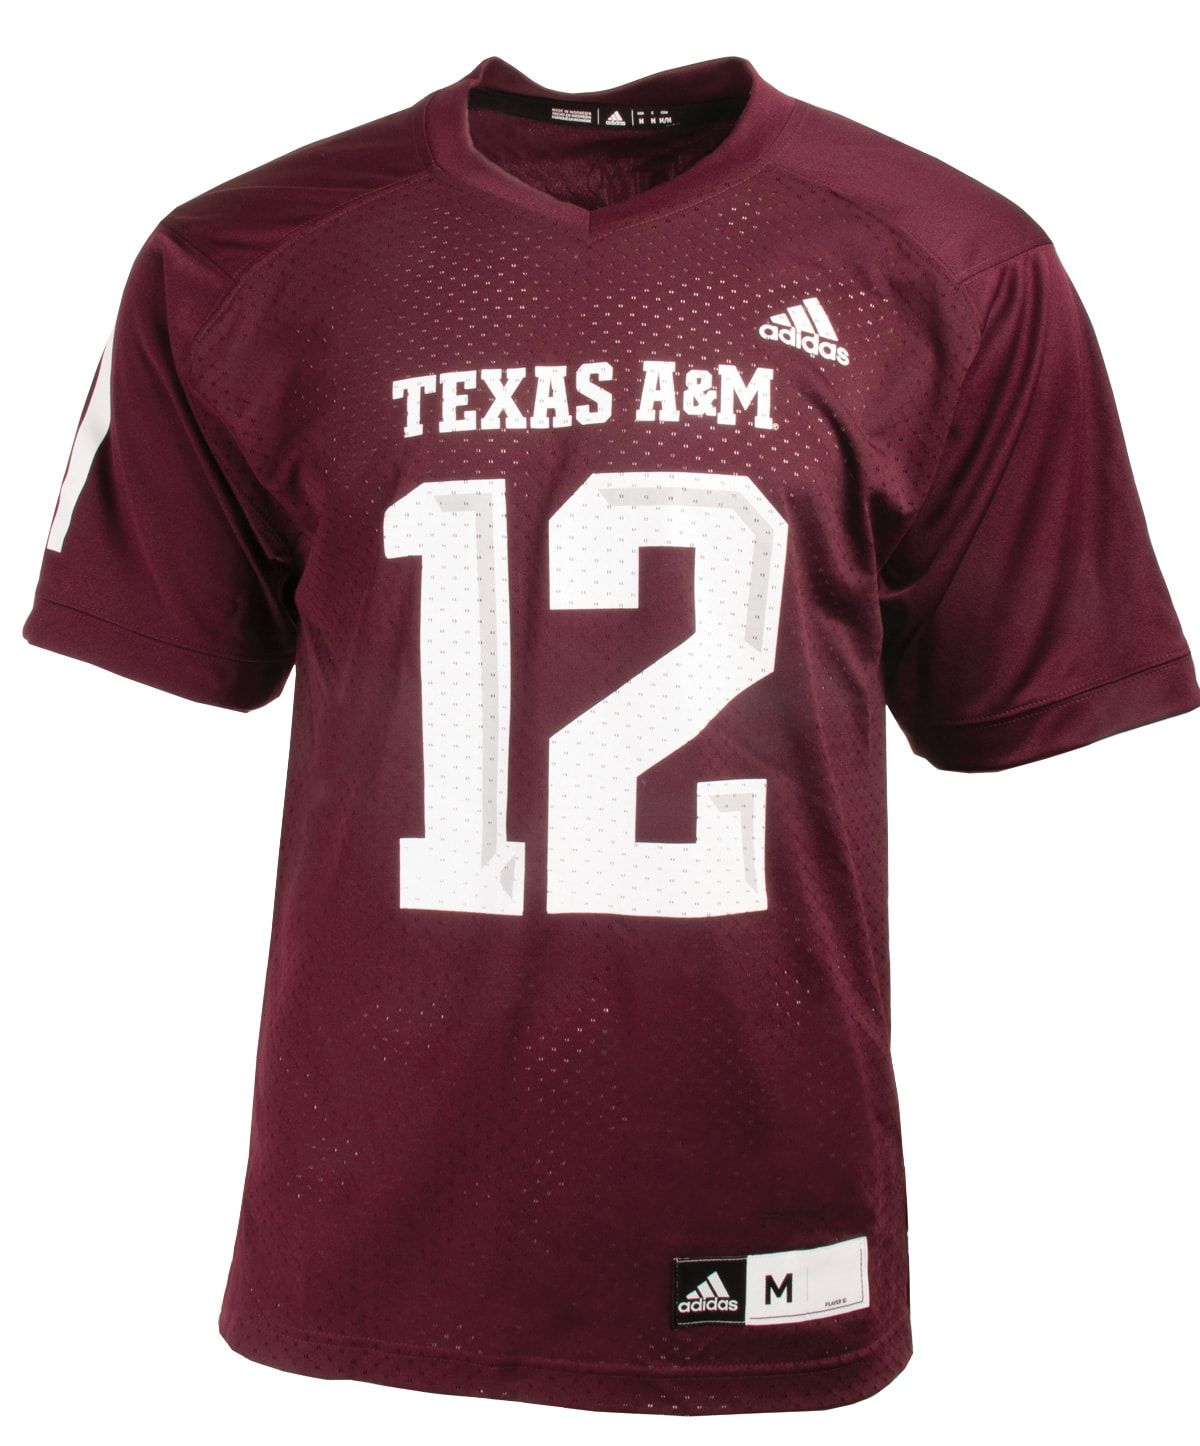 cheaper 6d2ef 47ce9 Adidas Texas A&M Aggies Replica Jersey in 2019 | Products ...